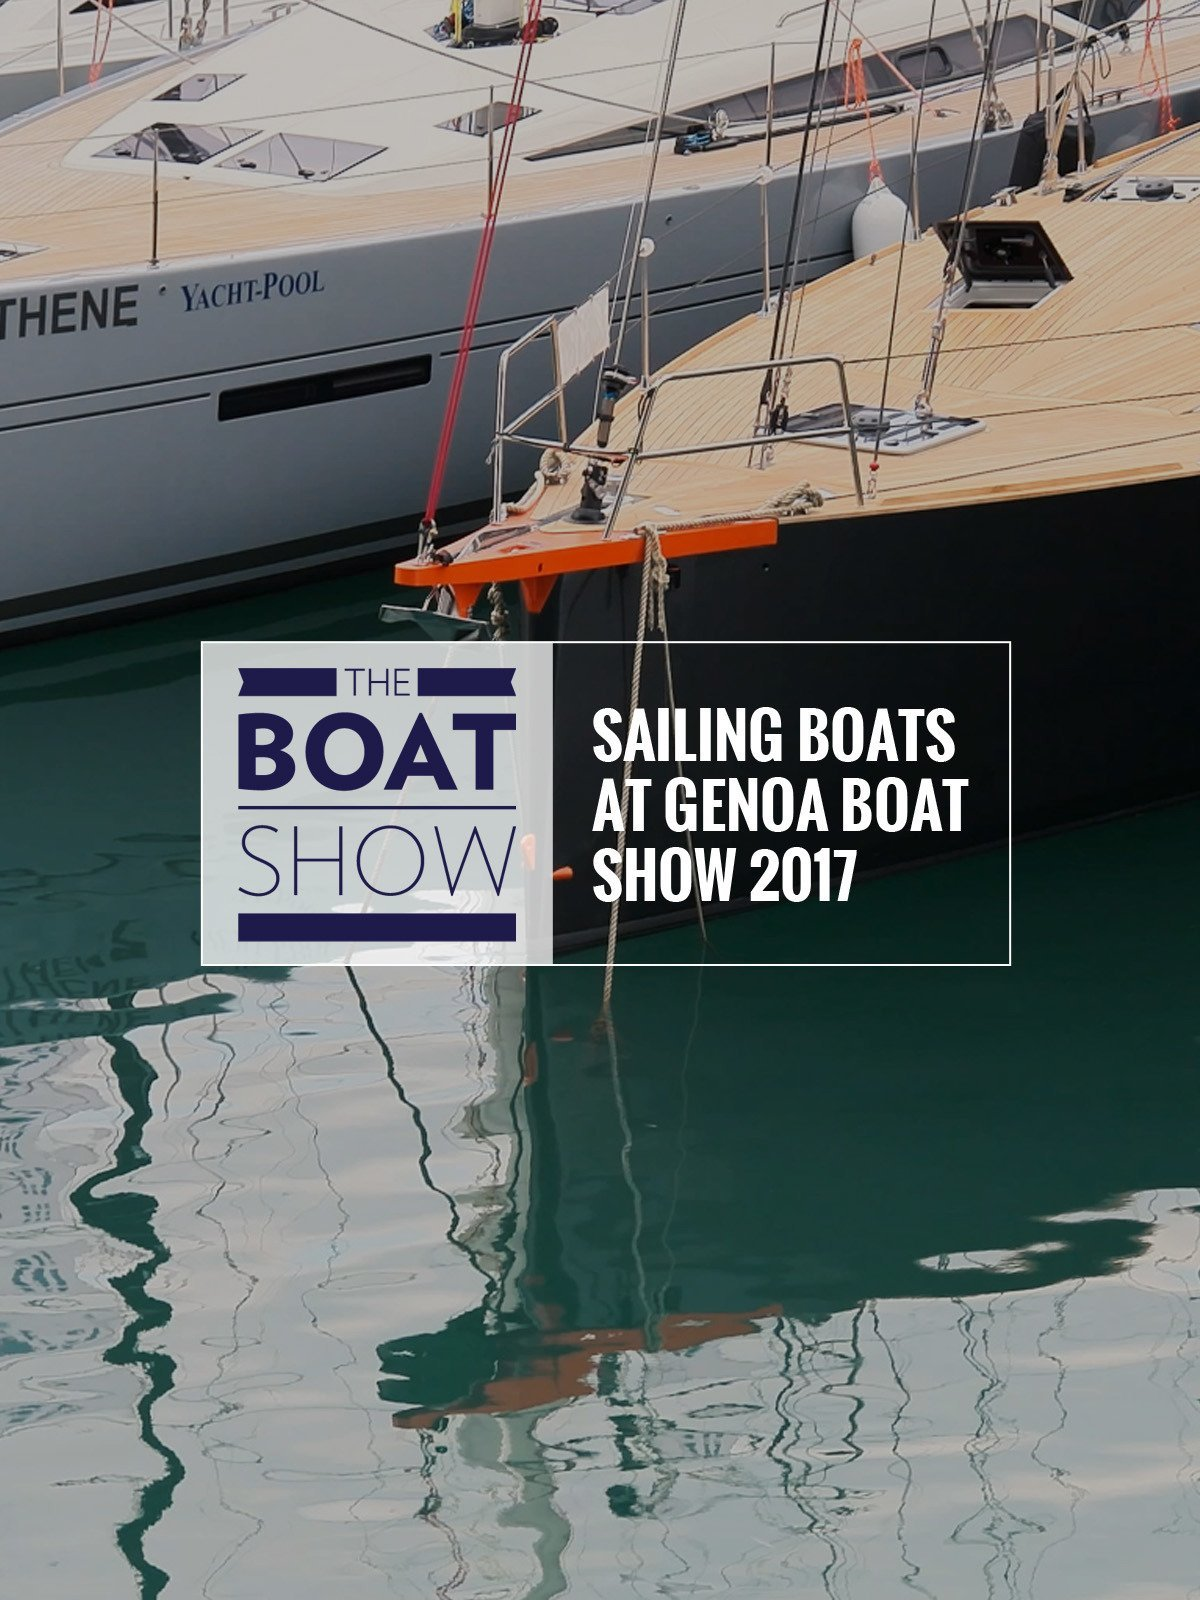 Review: Sailing boats at Genoa Boat Show - The Boat Show on Amazon Prime Video UK